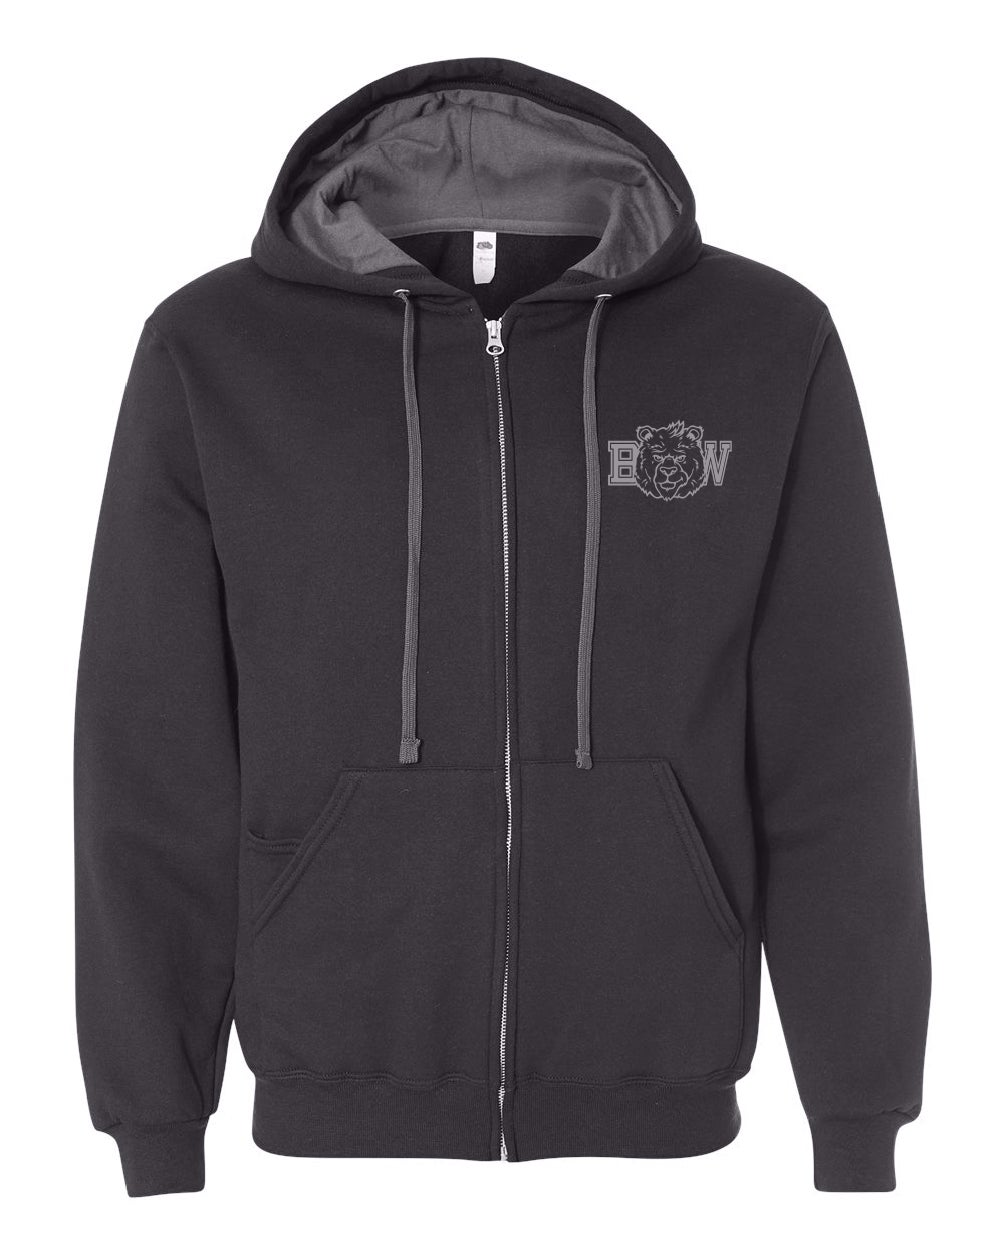 Image of BW ZipUp Sweater - Charcoal Black - SF73R